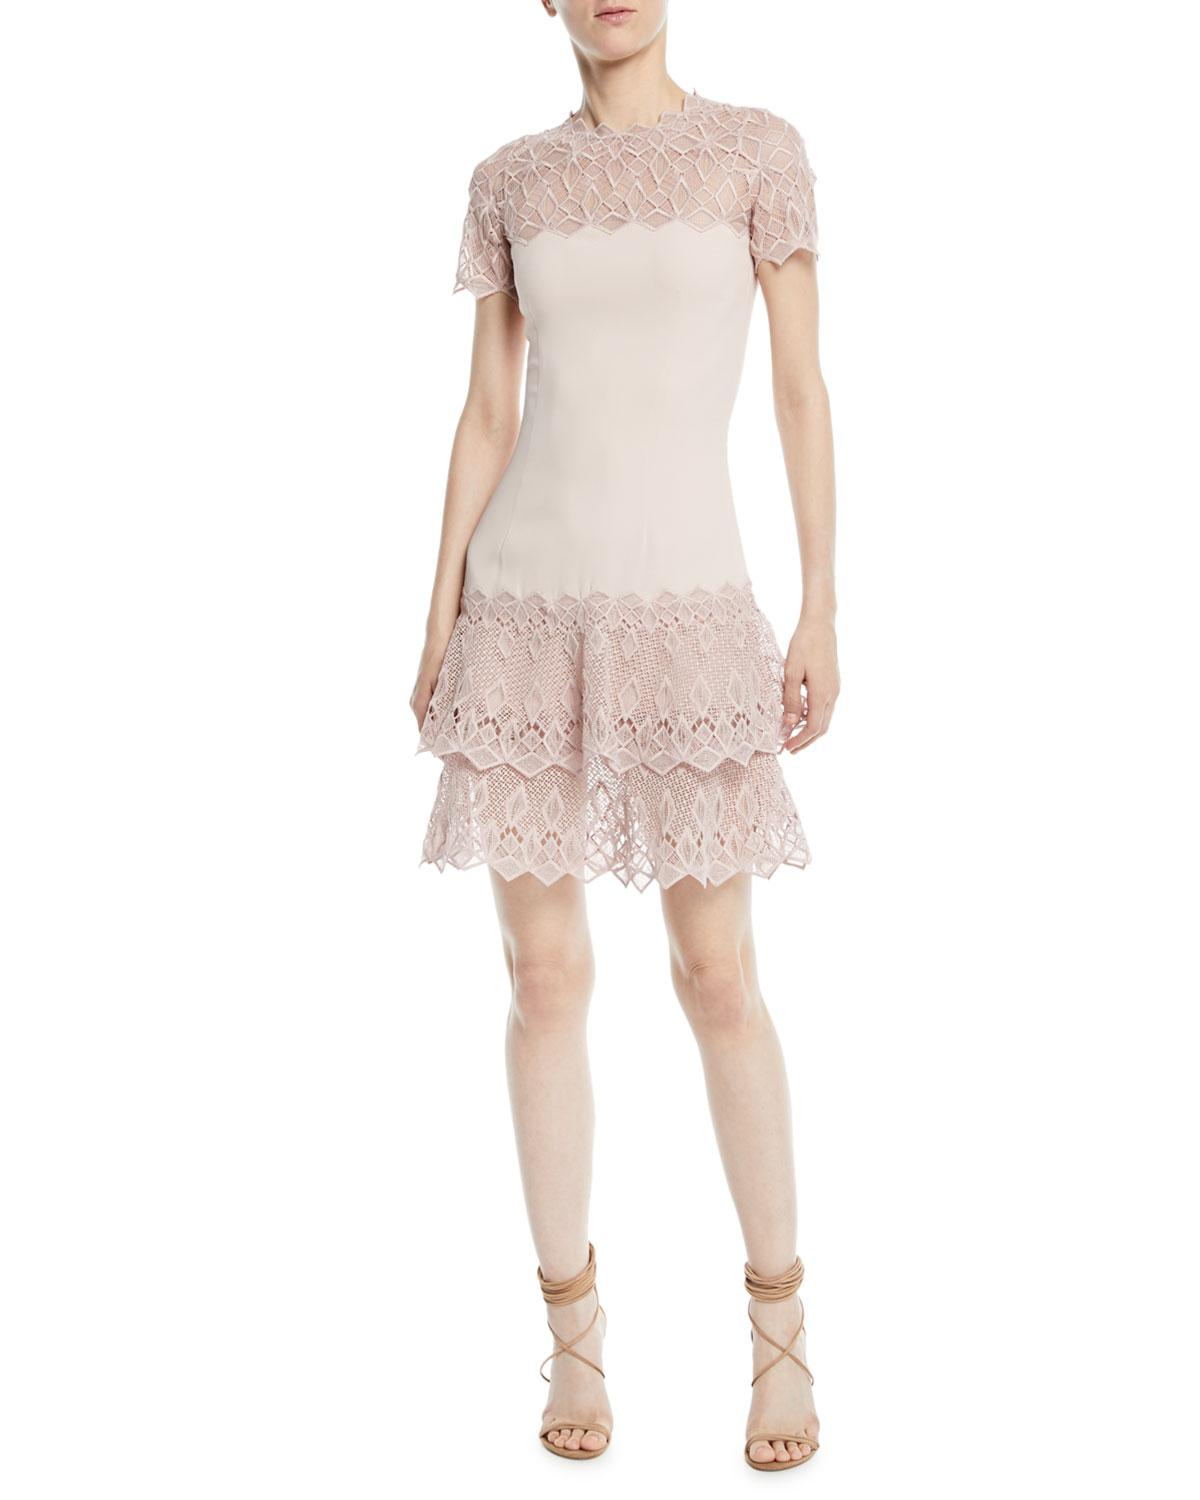 c105e1ad9ddc Jonathan Simkhai - Pink Diamond Crepe Applique Short-sleeve Mini Dress -  Lyst. View fullscreen